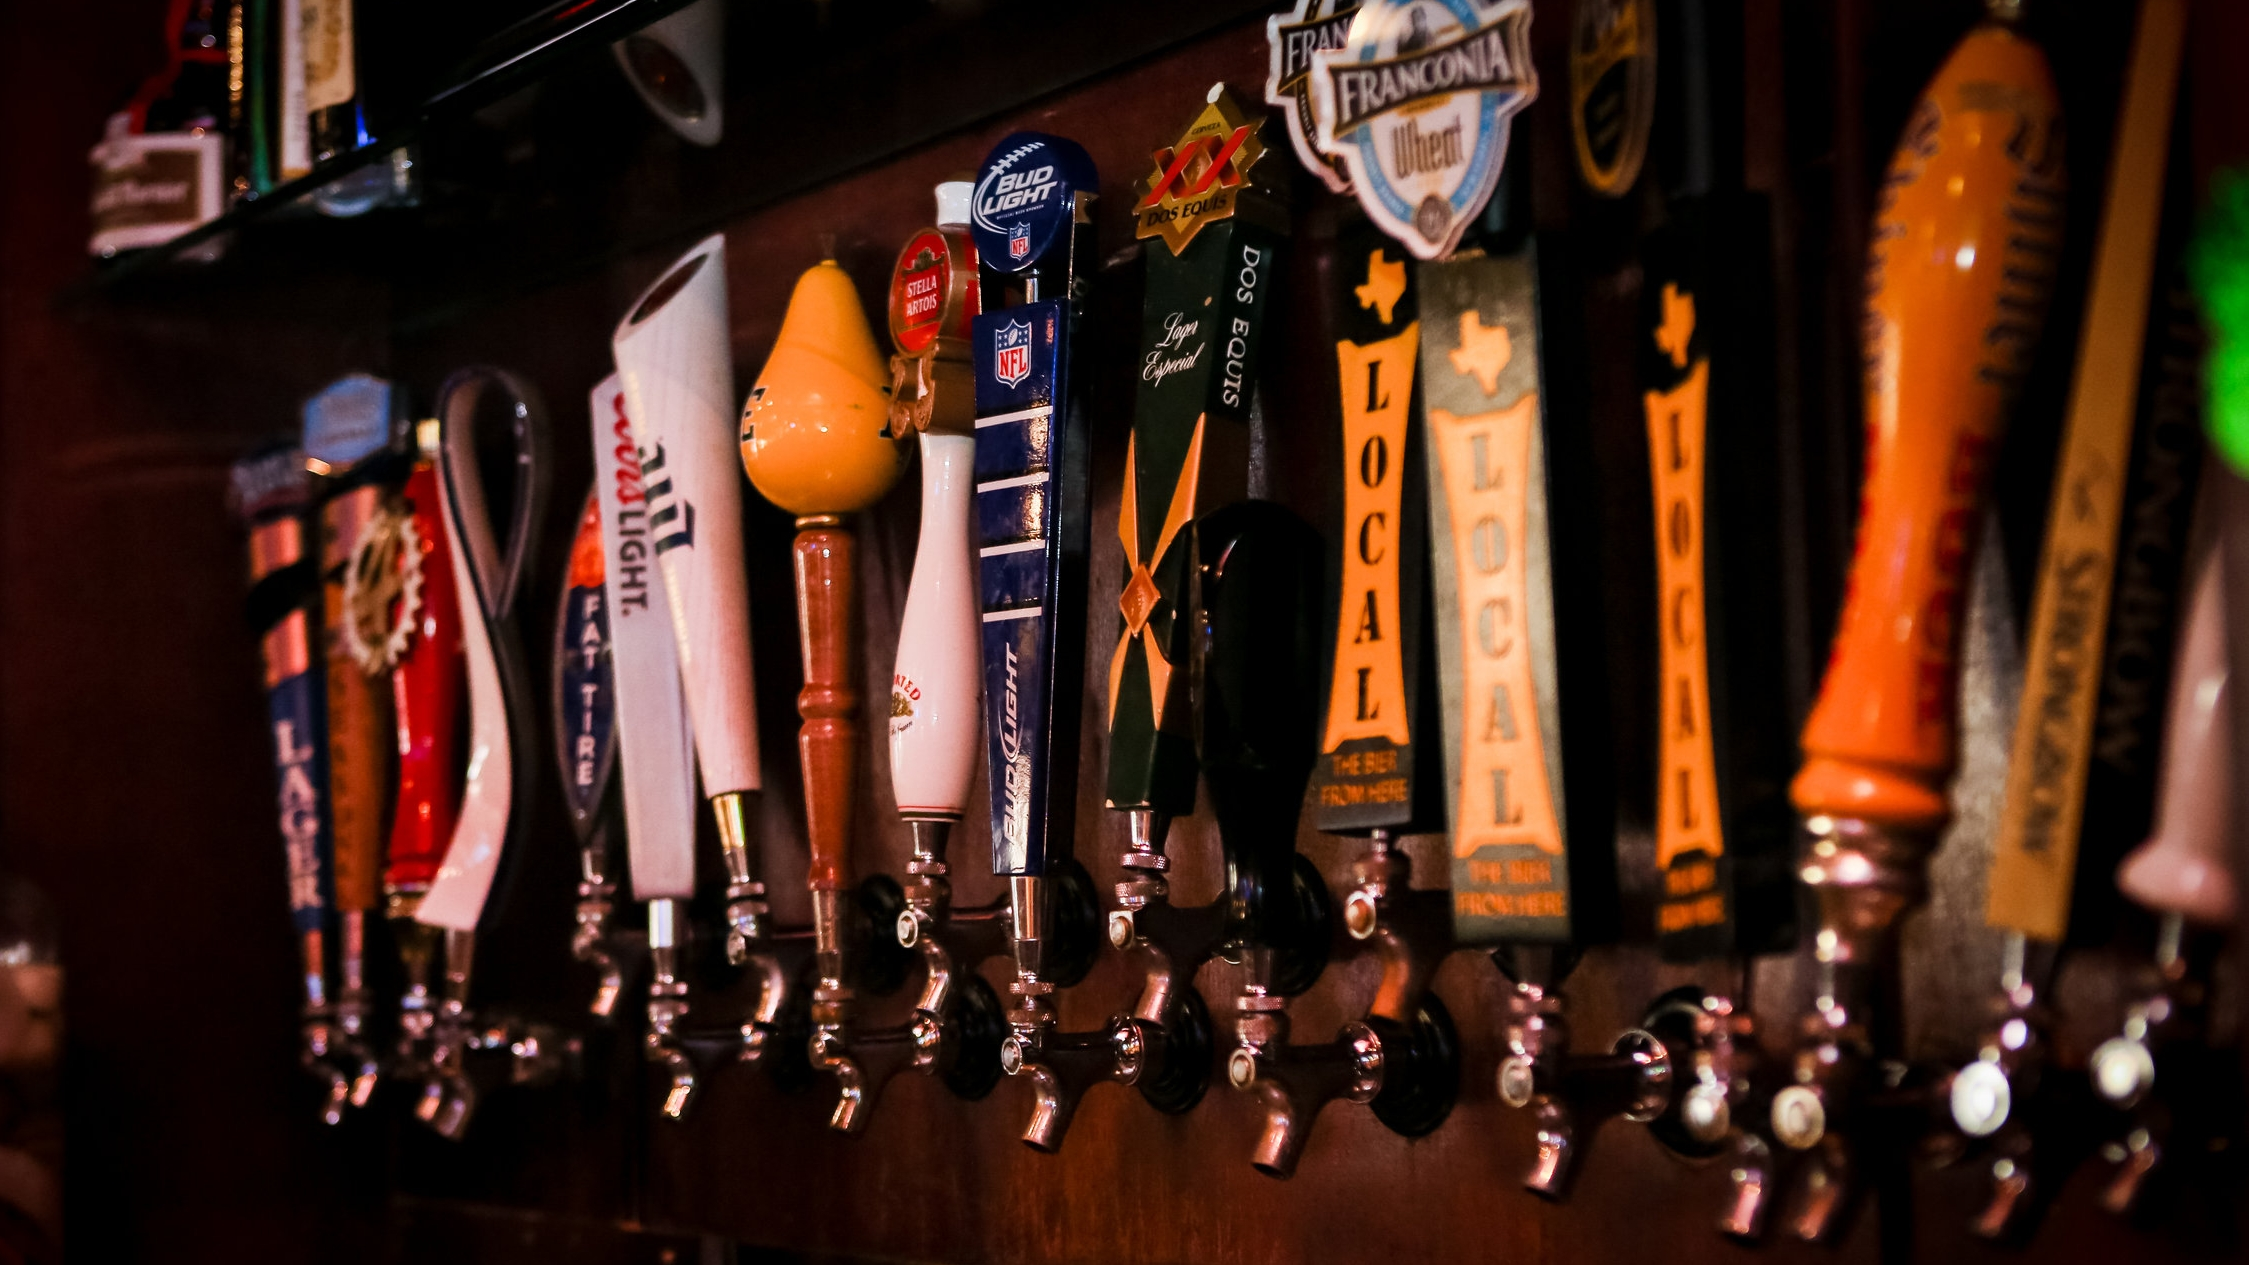 54 Beers On Tap